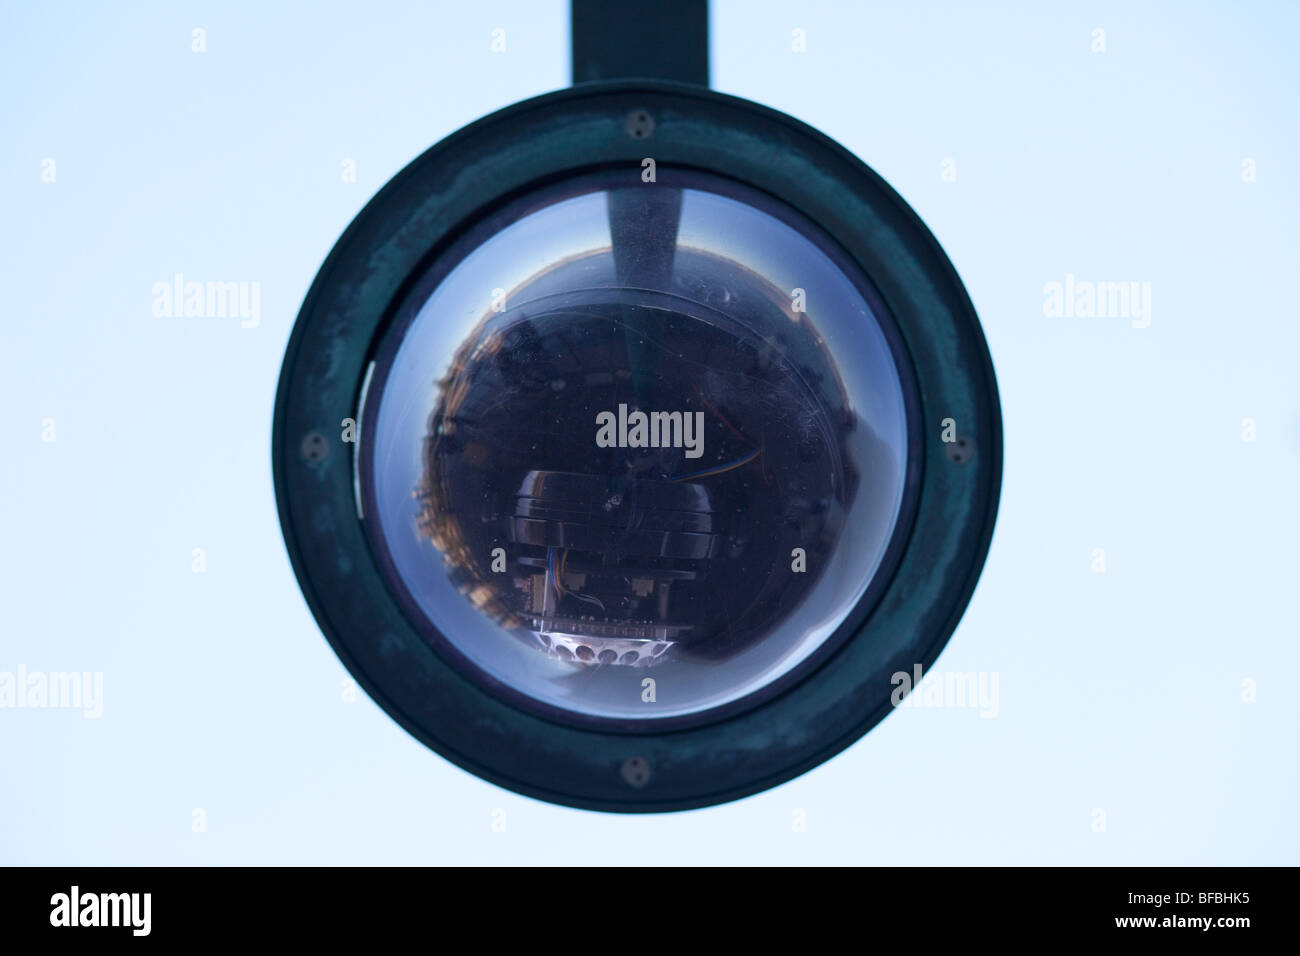 Security camera dome at the Sydney Opera House - Stock Image